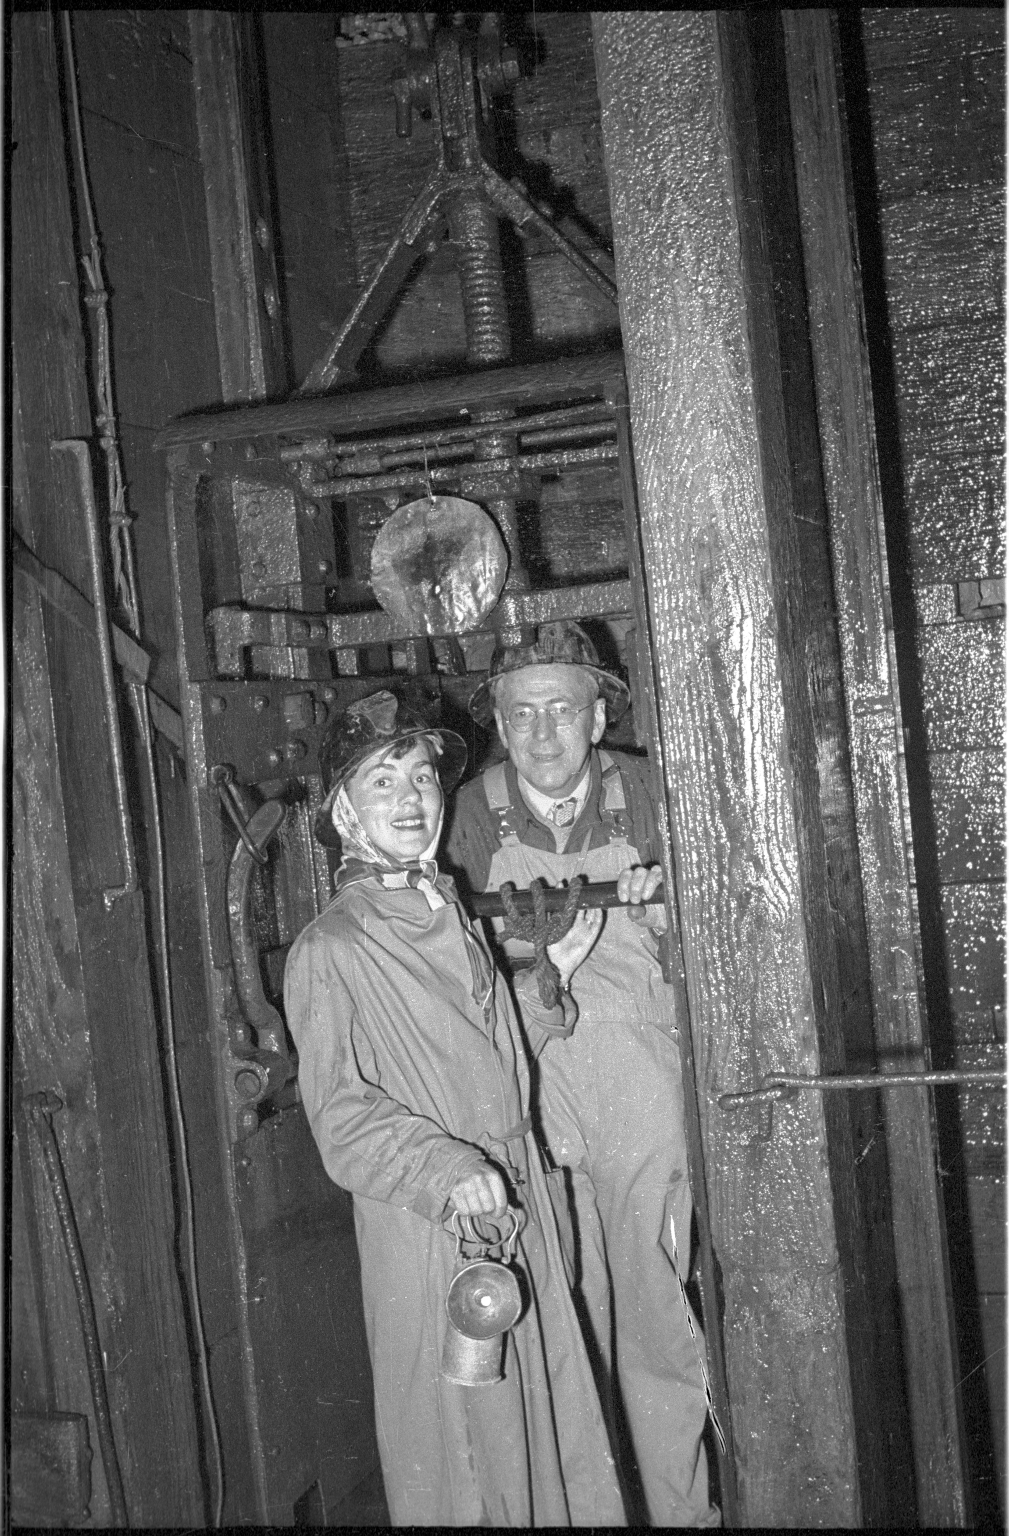 Australian Fieldwork- Alfred M. Bailey and Patricia Bailey Witherspoon in the Central Deborah Gold Mine